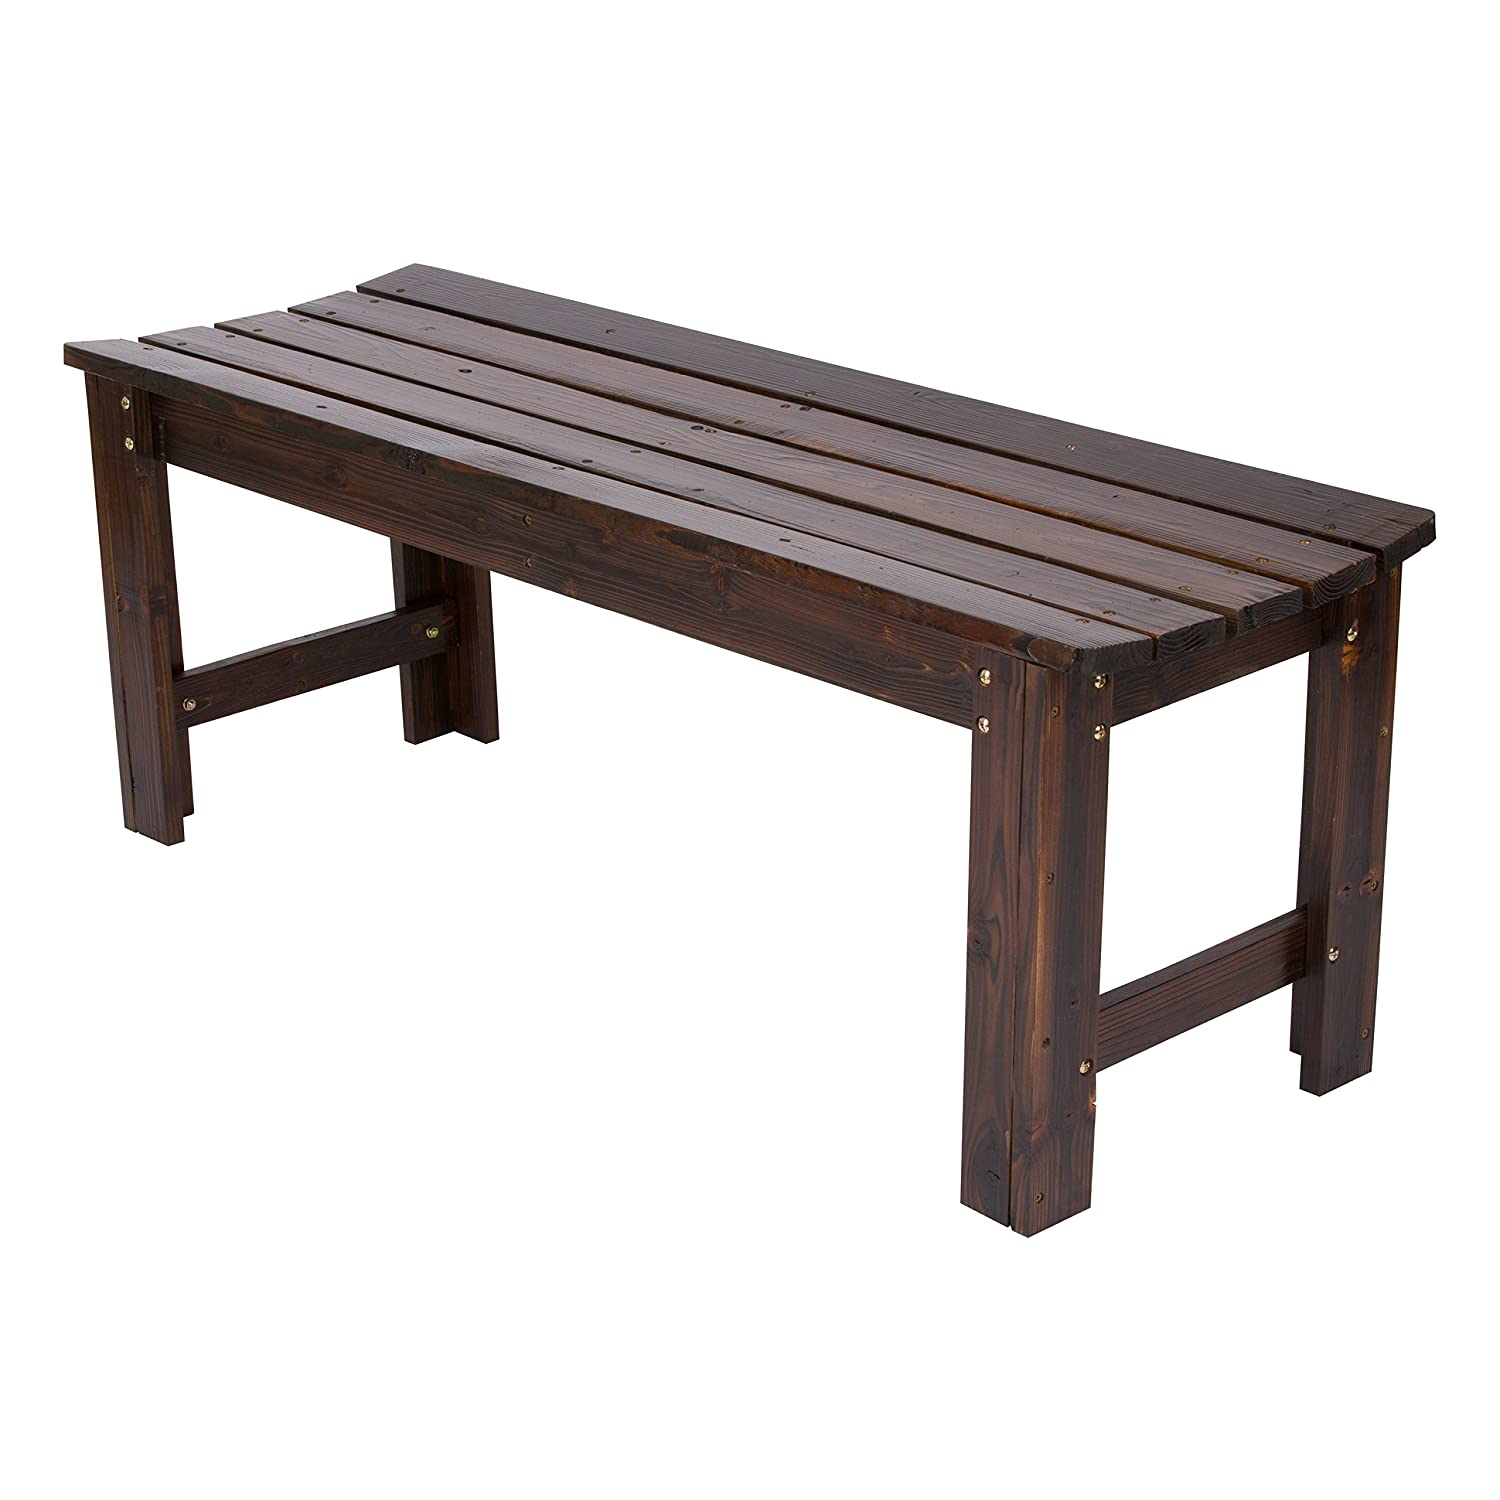 Shine Company Inc. 4204BB Backless Garden Bench, 4 Ft, Burnt Brown